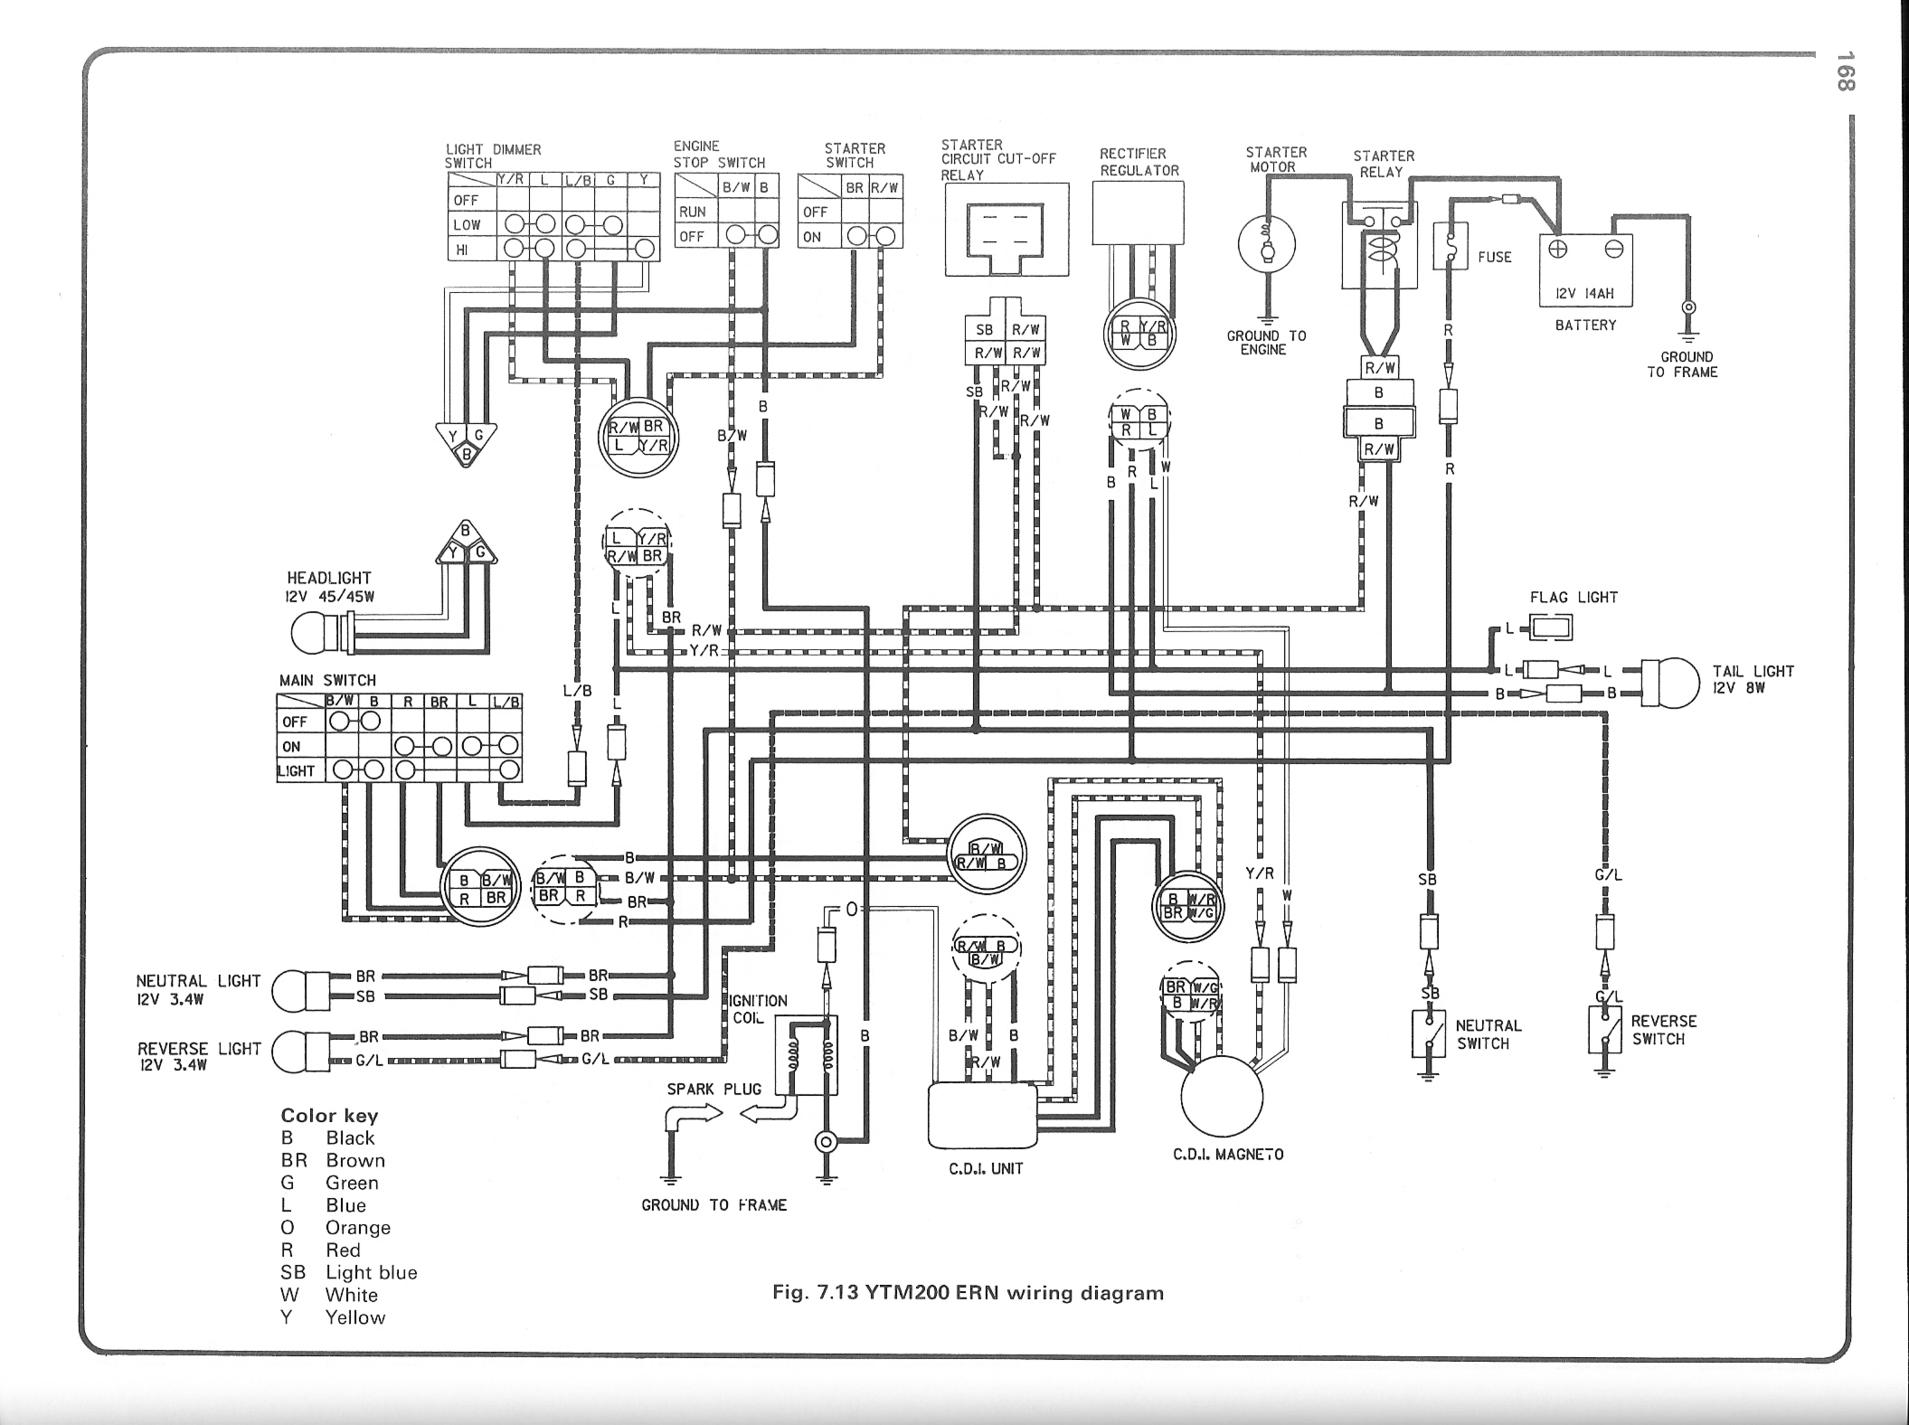 1987 Polaris Trail Boss 250 Wiring Diagram Boss Plow Light